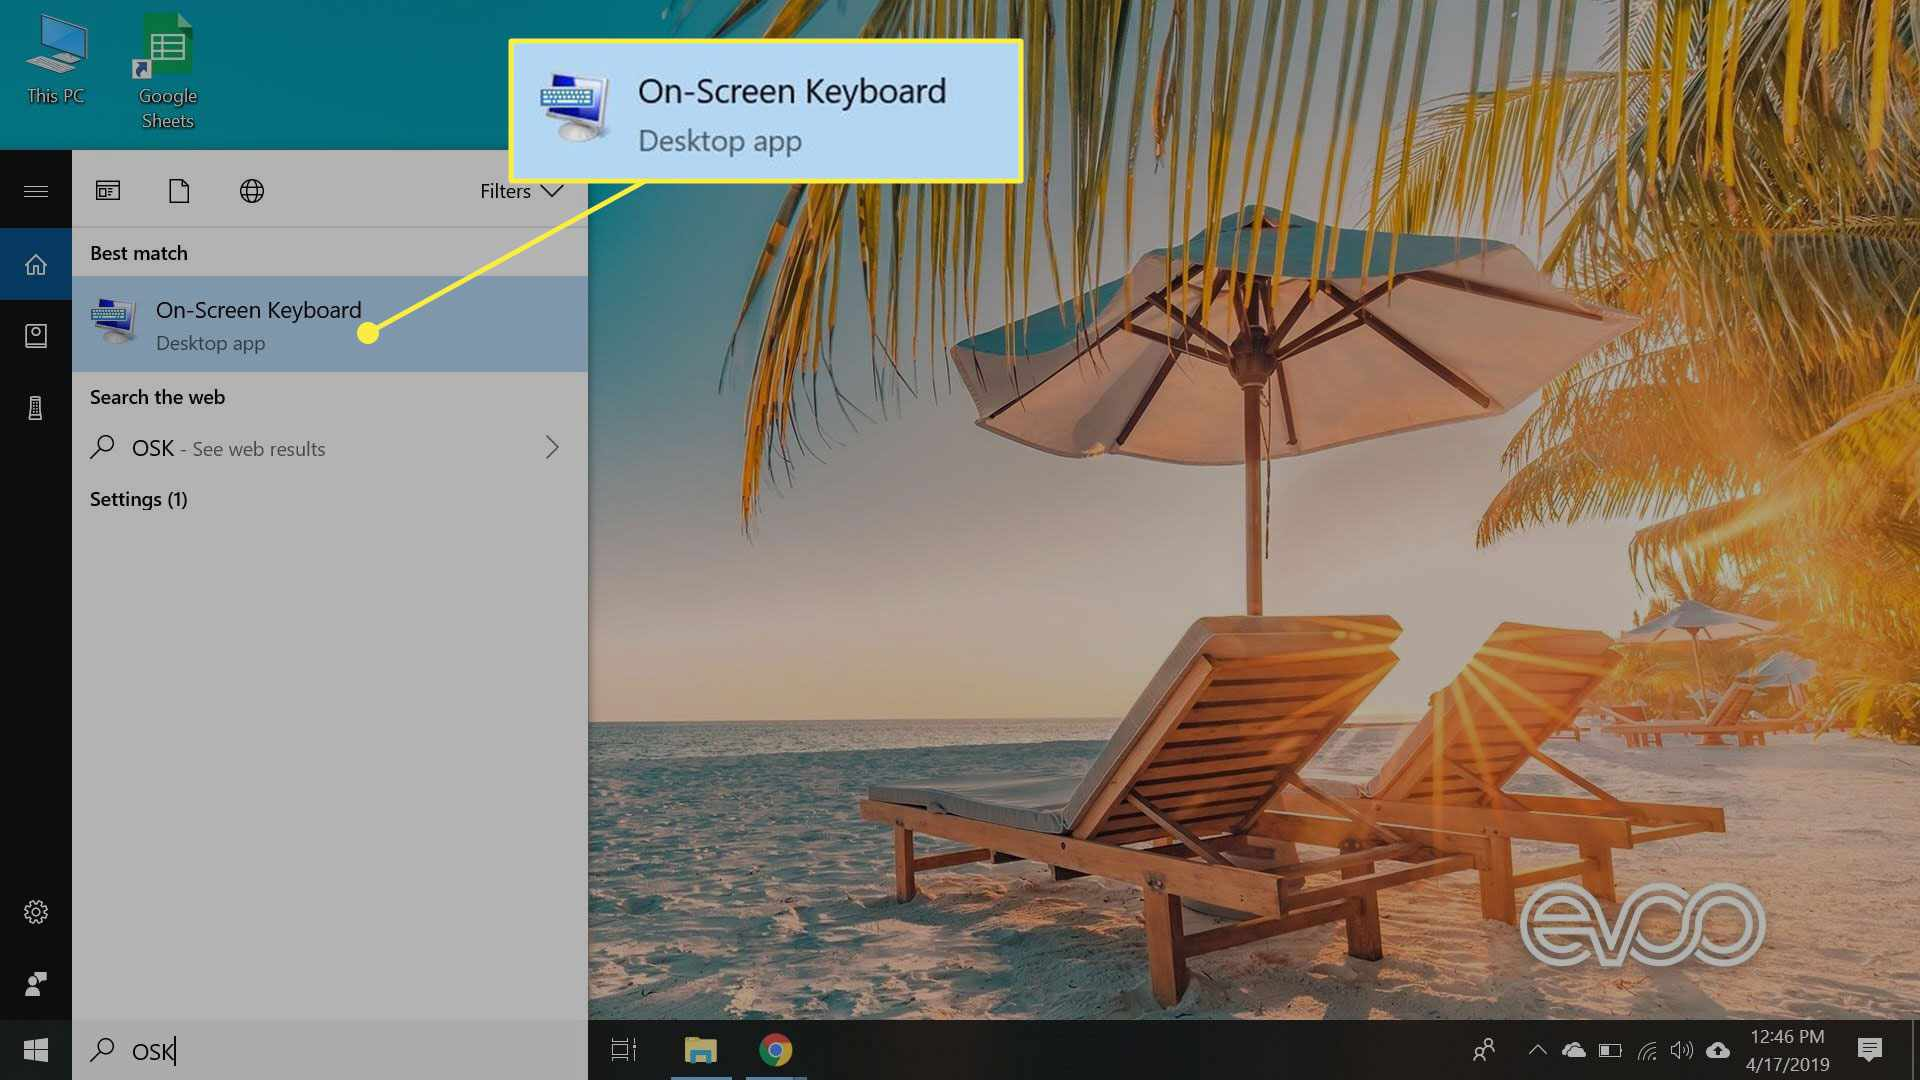 A screenshot of Windows 10 with the On-Screen Keyboard app highlighted